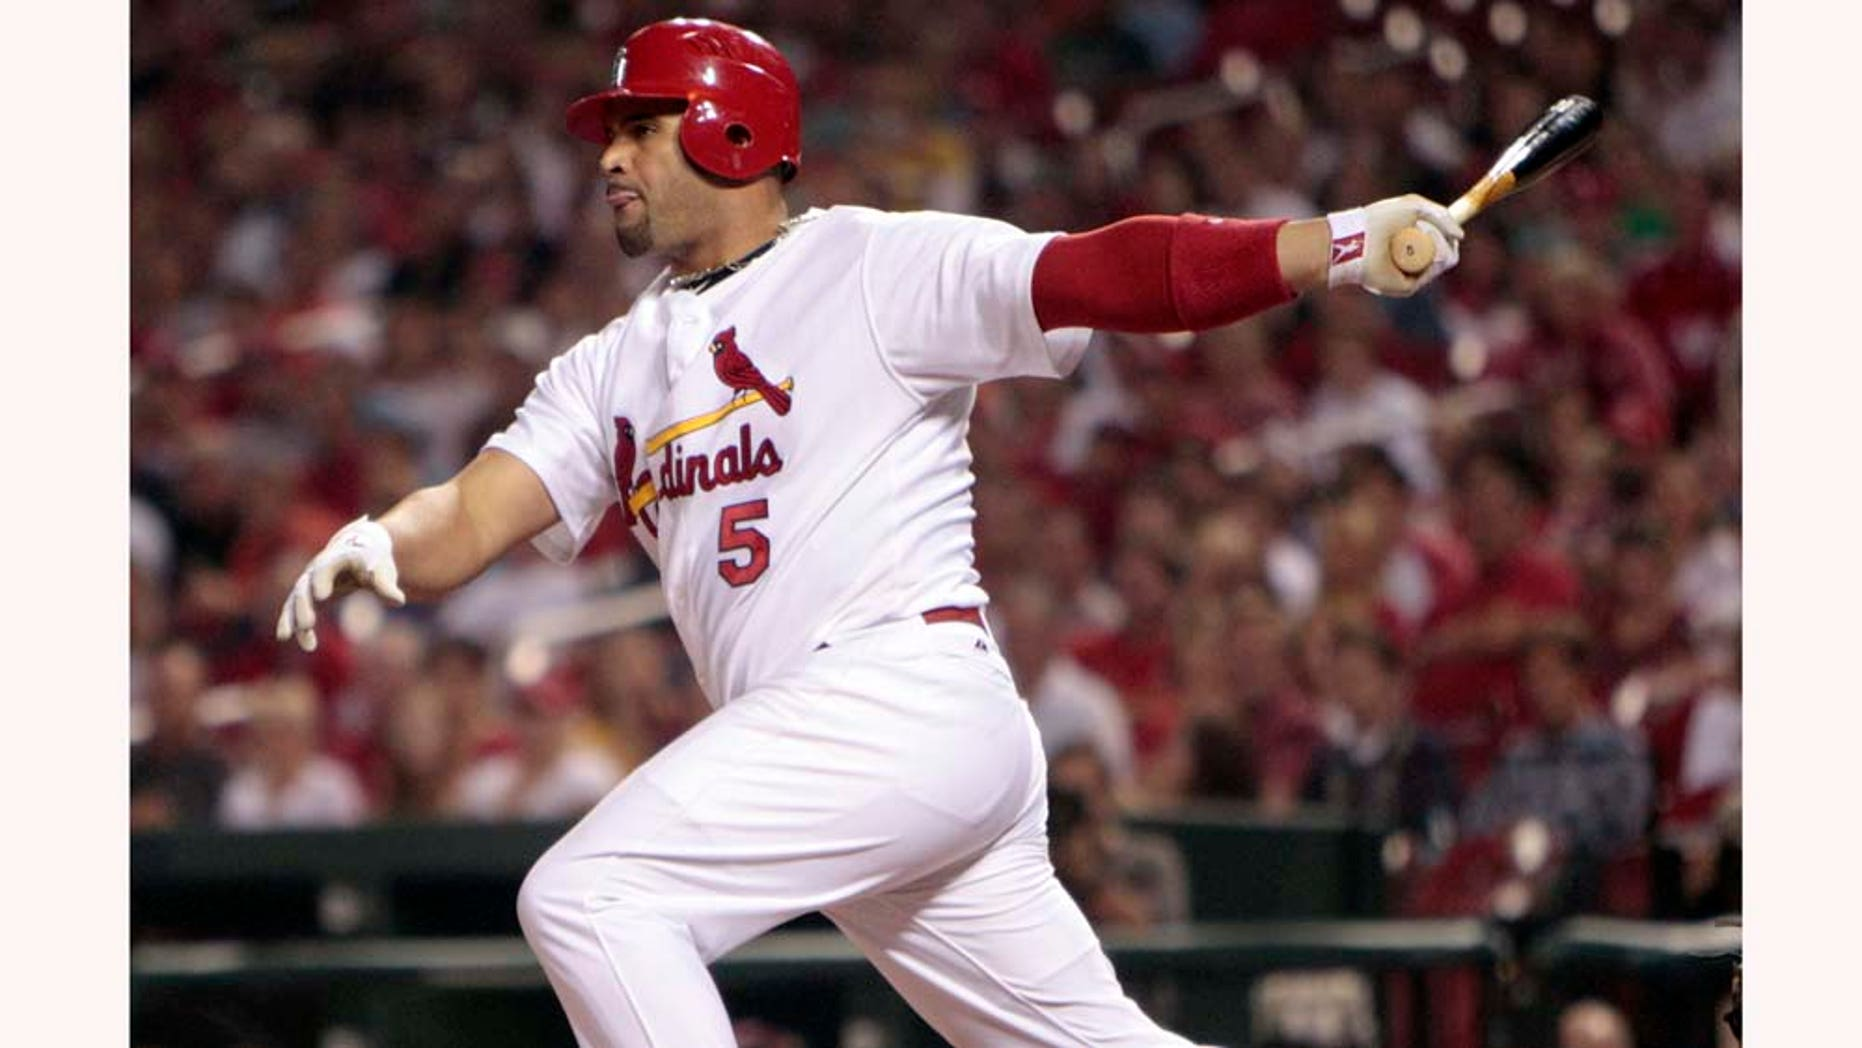 FILE - This Sept. 17, 2010, file photo shows St. Louis Cardinals' Albert Pujols hitting an RBI-double during the first inning of a baseball game against the San Diego Padres, in St. Louis. Pujols is seeking a deal that would make him one of baseball's highest-paid players.  (AP Photo/Jeff Roberson, File)